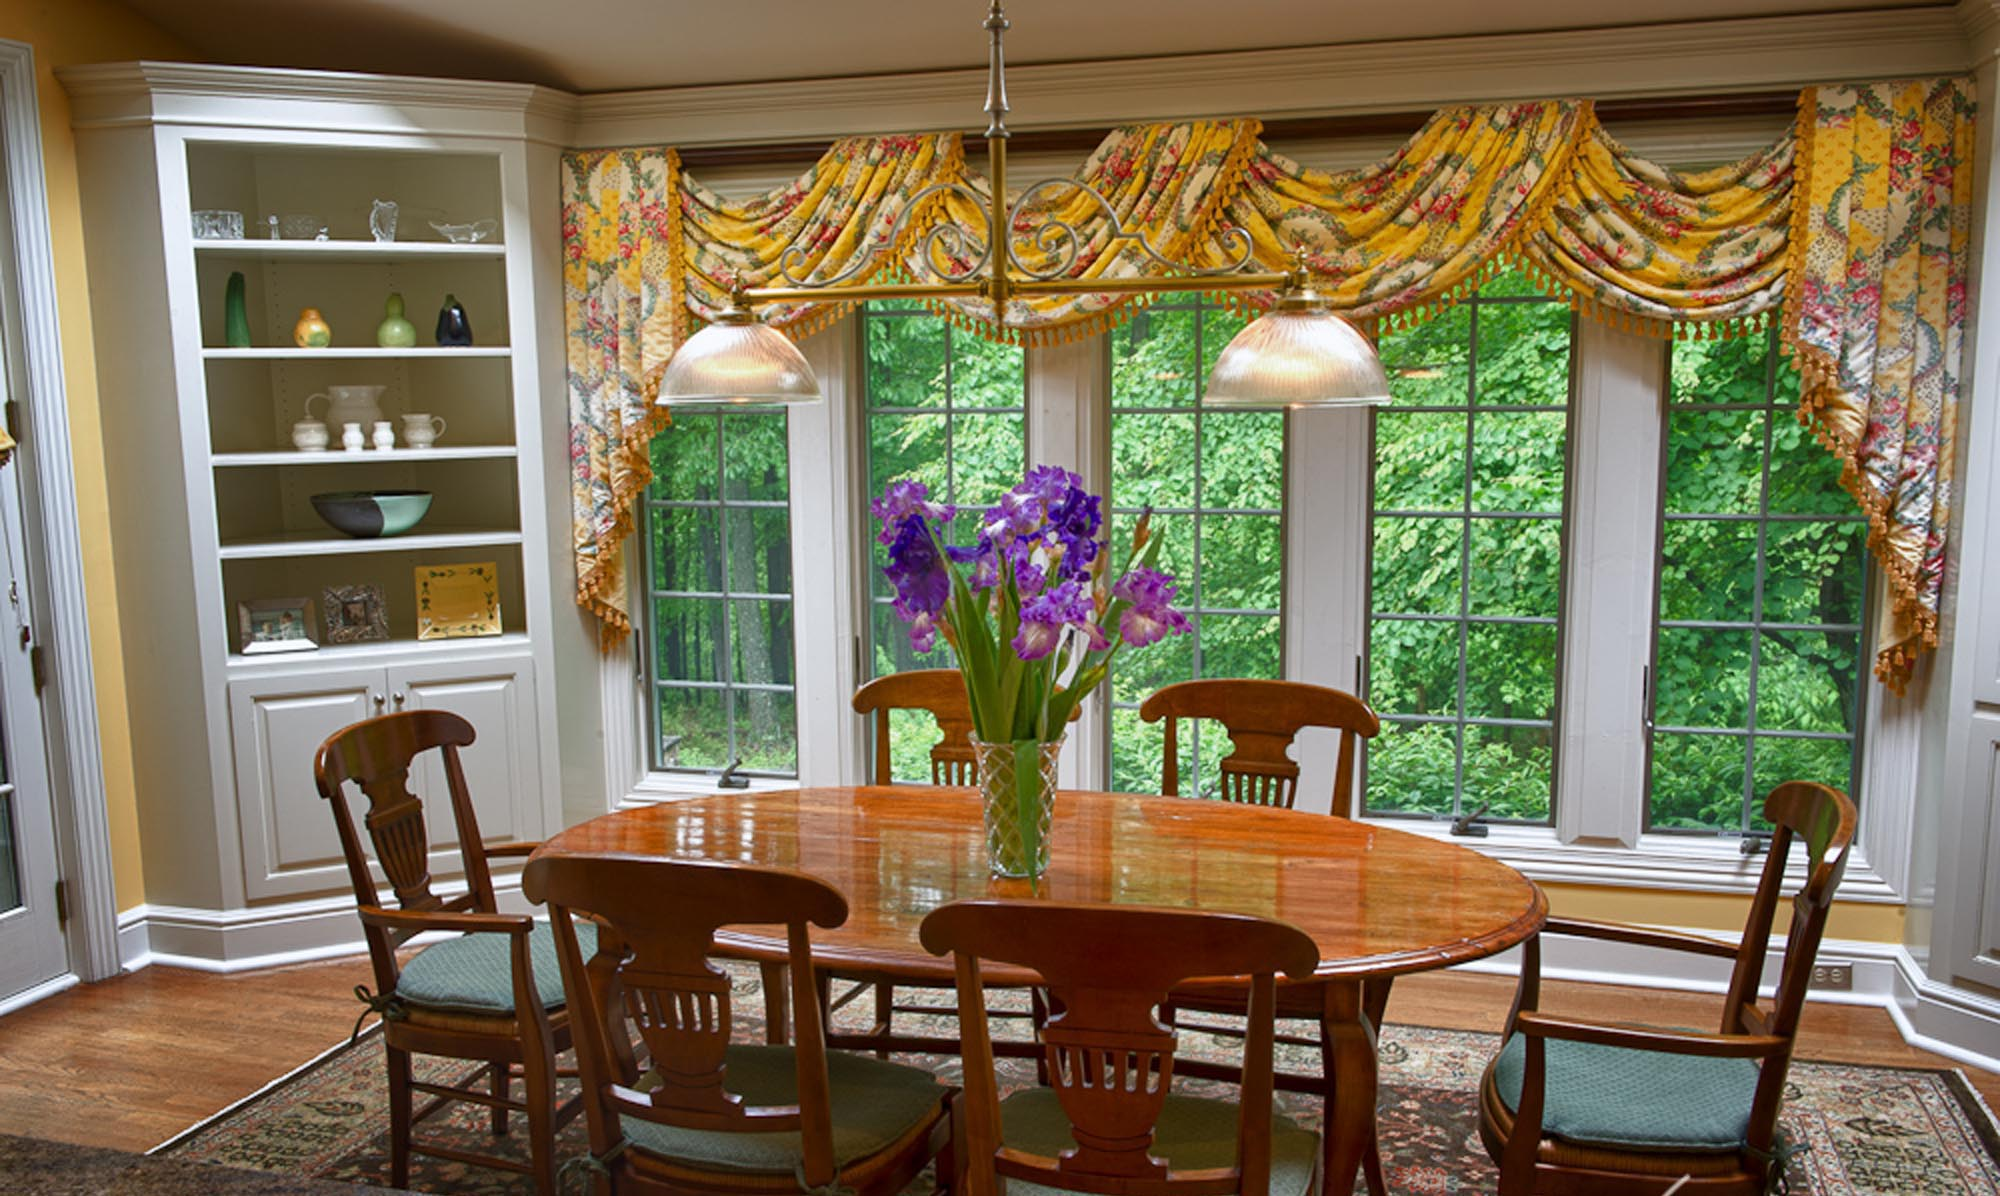 Bright dining area with wooden table for six and flowers